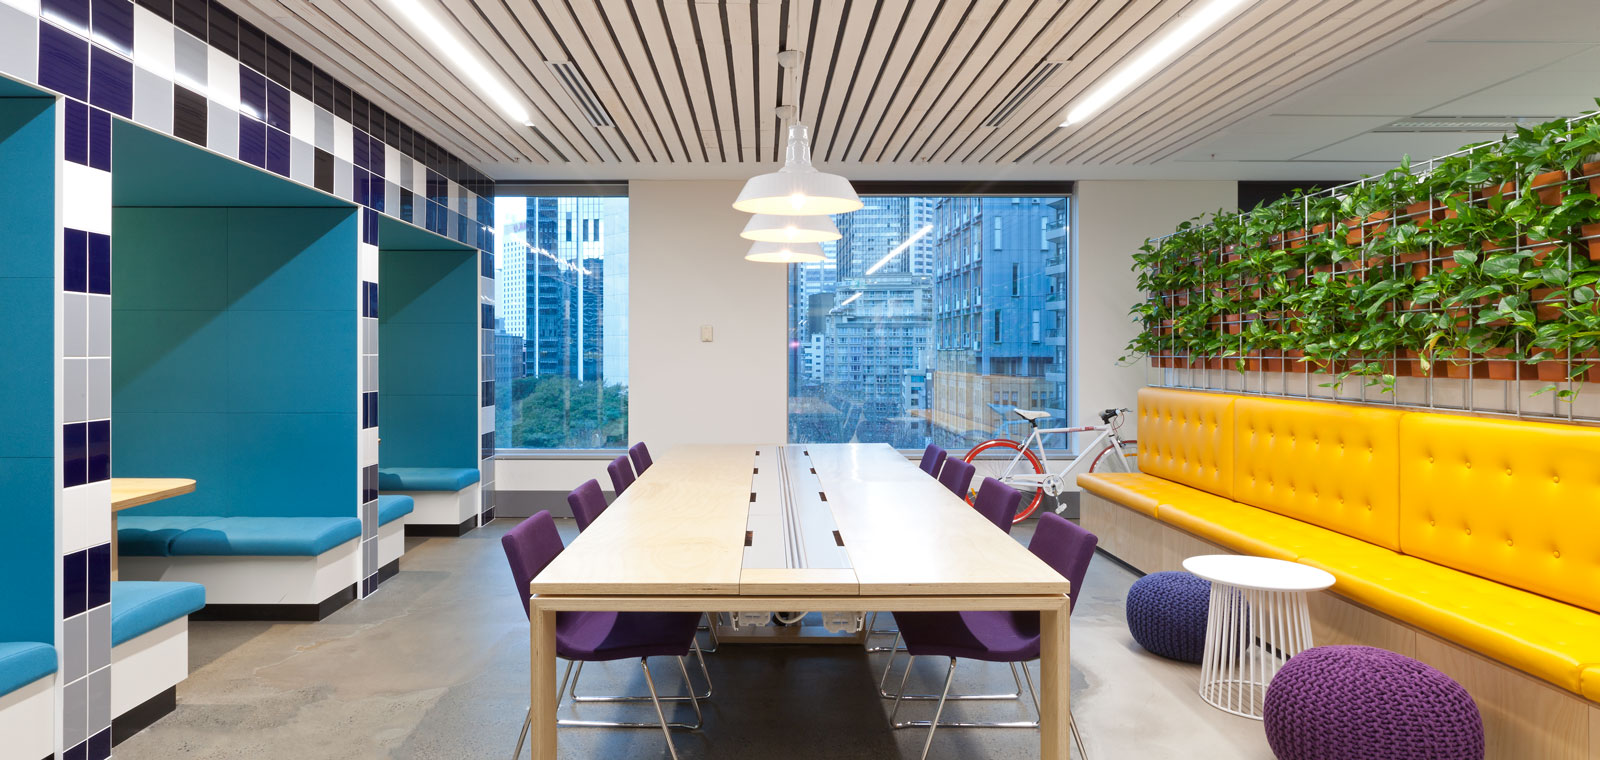 Commercial Interior Design Firm Sydney Bespoke Office Fitouts Idpm Rh Idpm  Com Au Commercial Hotel Interior Designer Commercial Interior Design Firms  Sydney